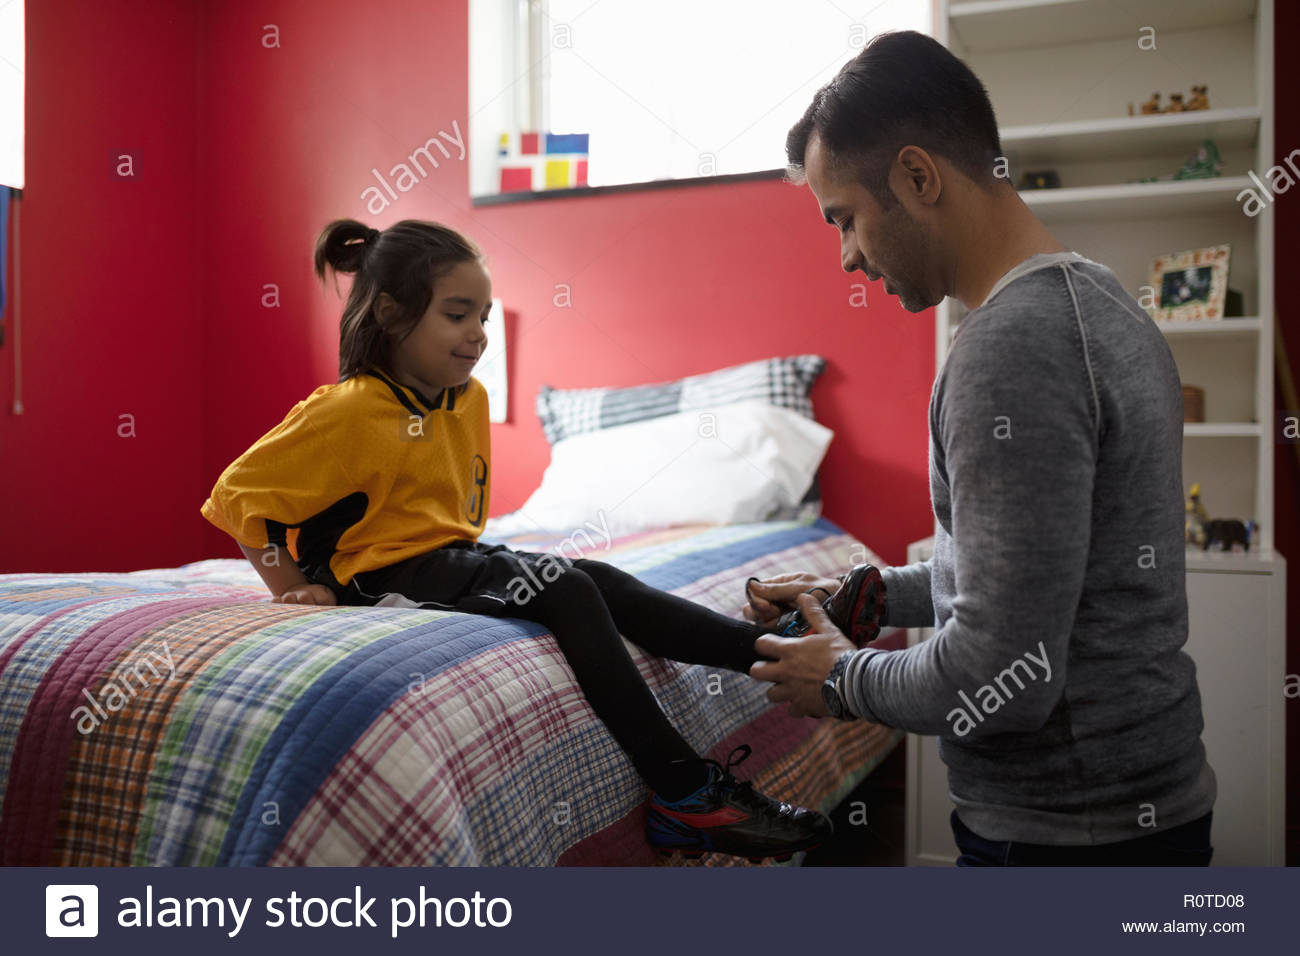 Father tying soccer shoes for son on bed - Stock Image